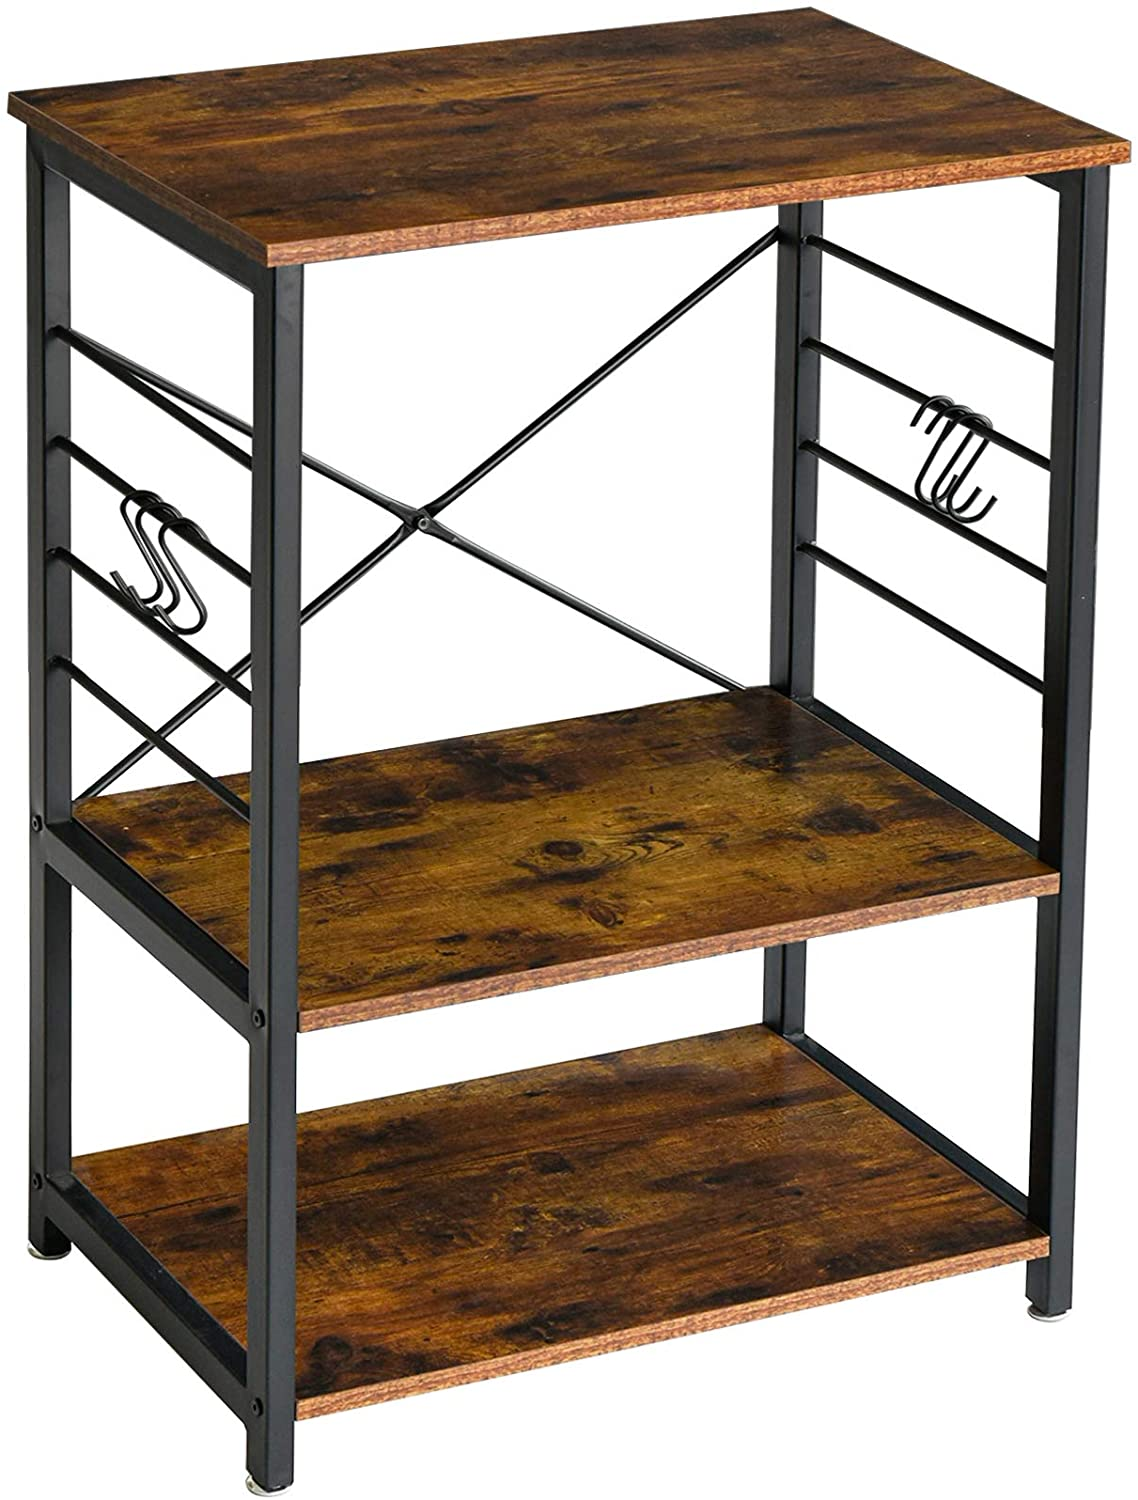 ymyny industrial microwave oven stand 3 tier kitchen baker s rack with metal frame and 6 hooks multifunctional coffee bar for living room